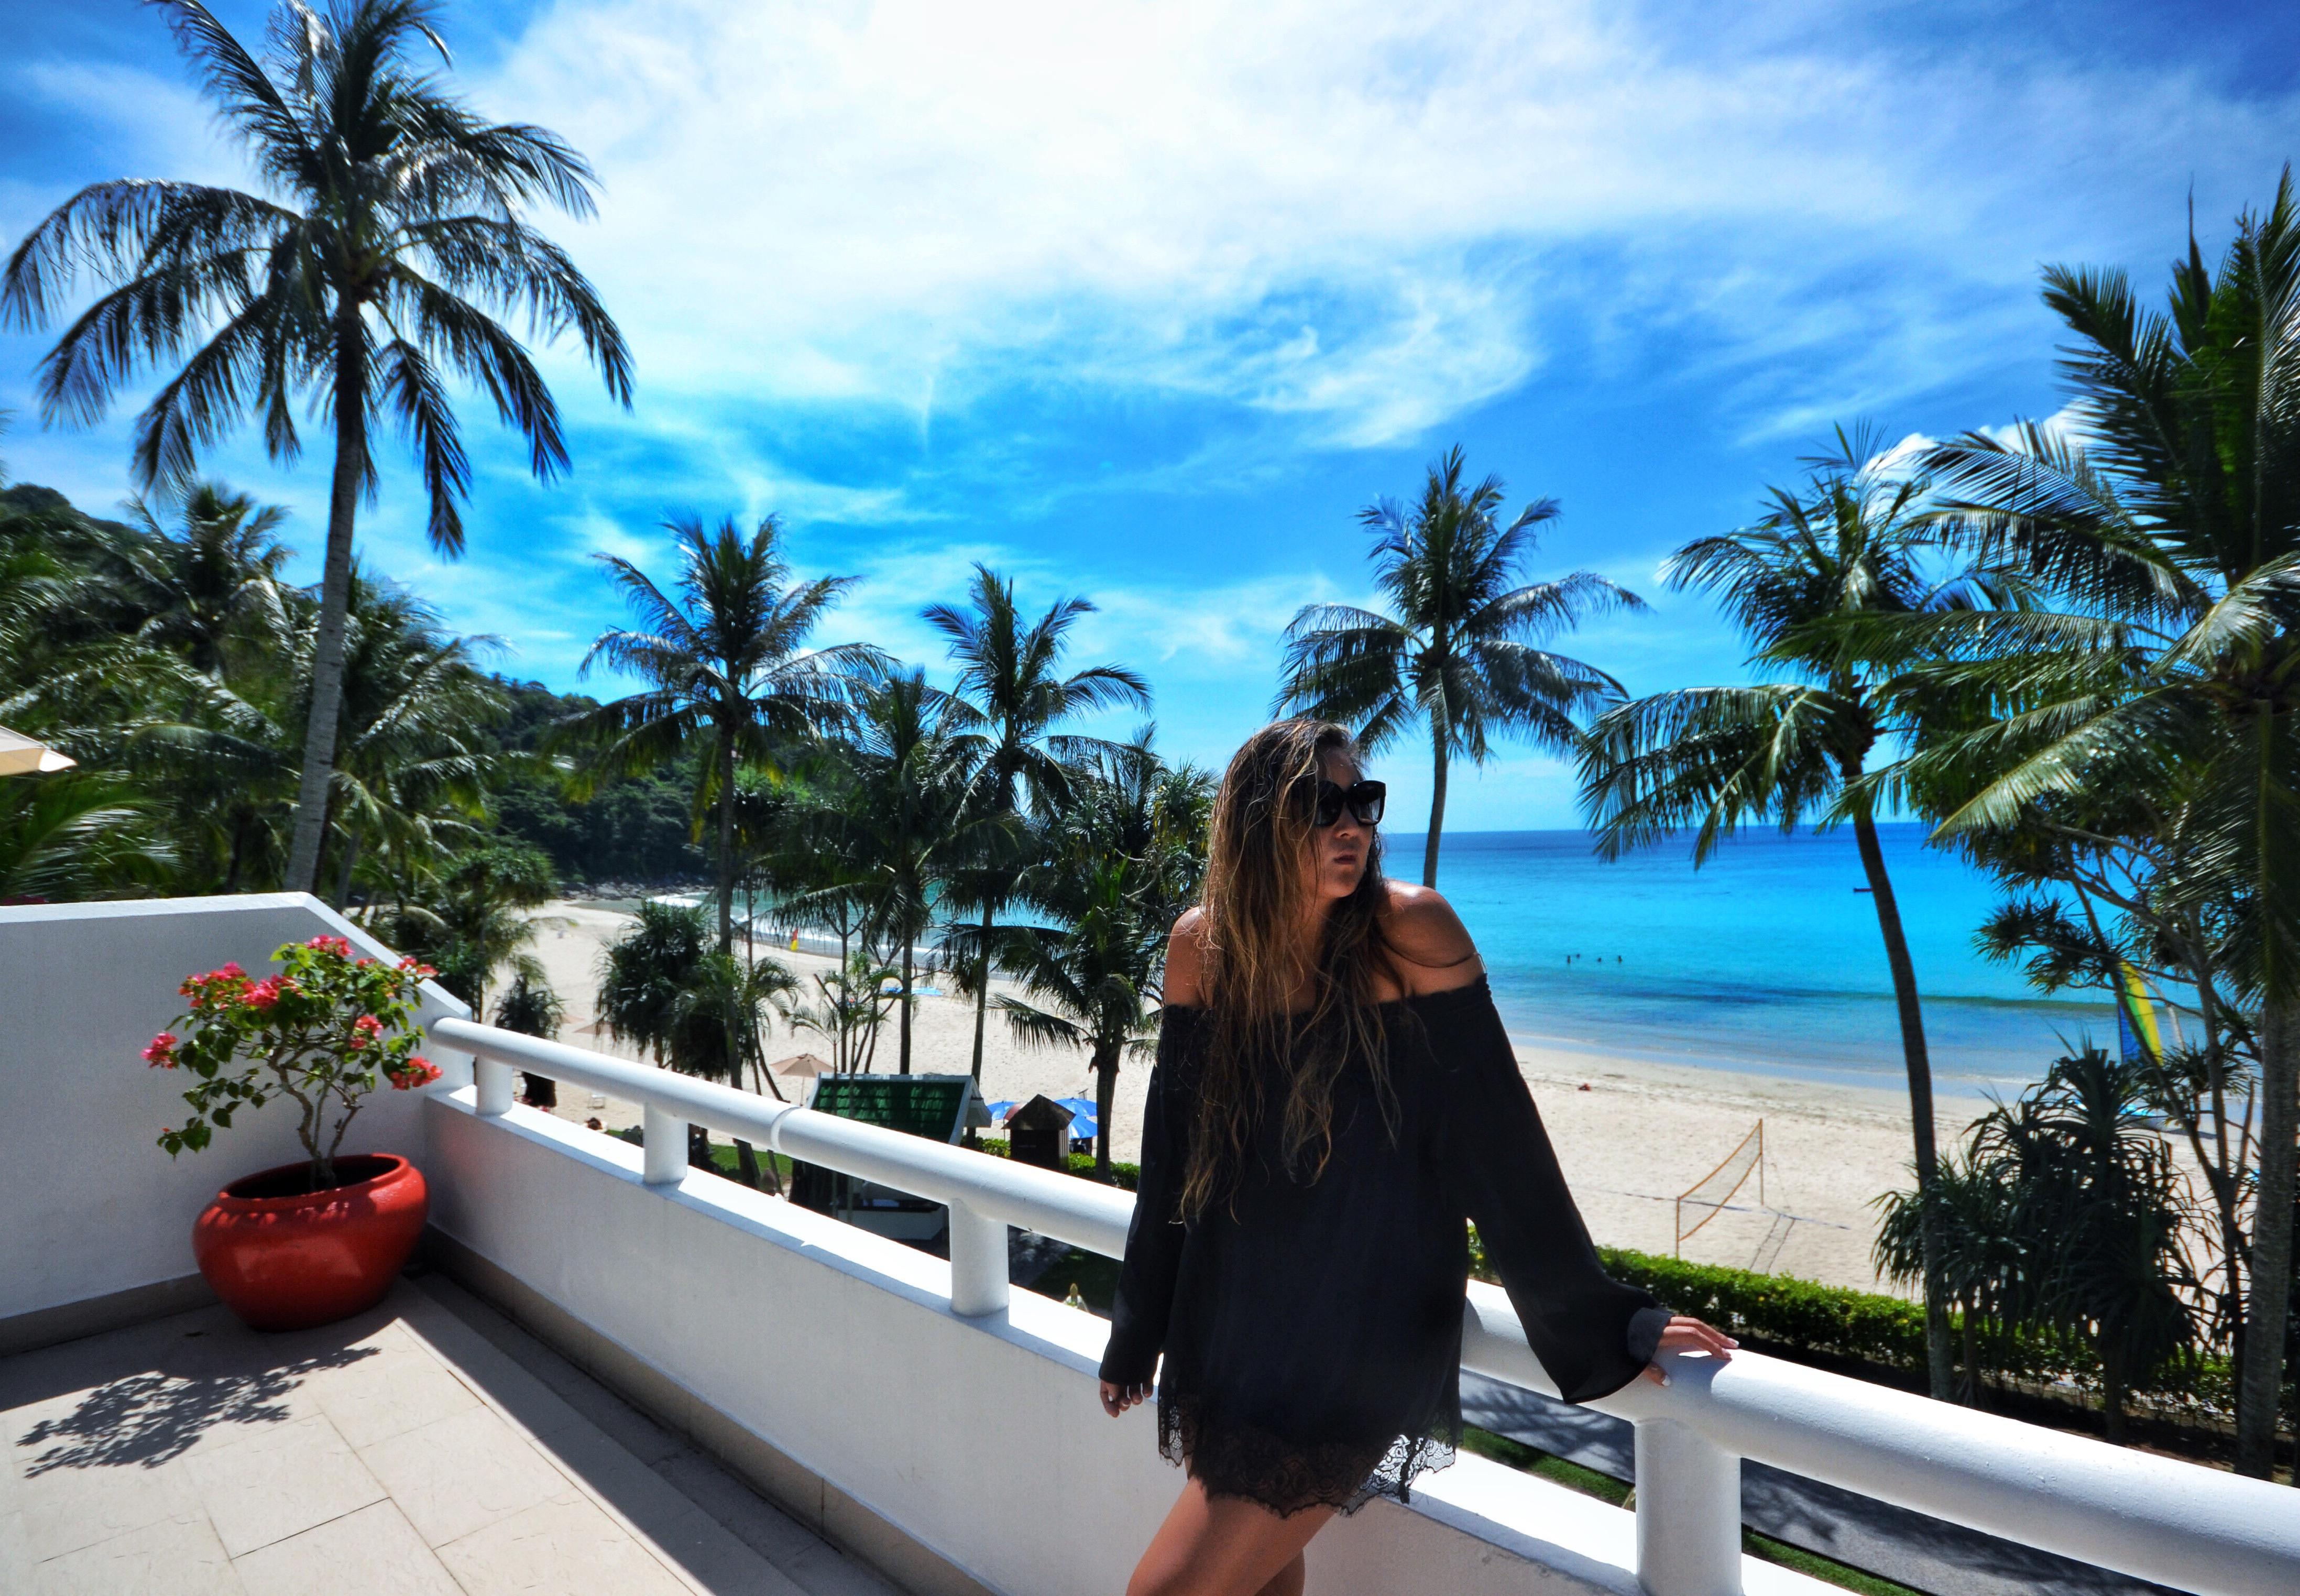 Phuket Travel Diary: Le Meridien Phuket Beach Resort | Christing C. | Bloglovin'